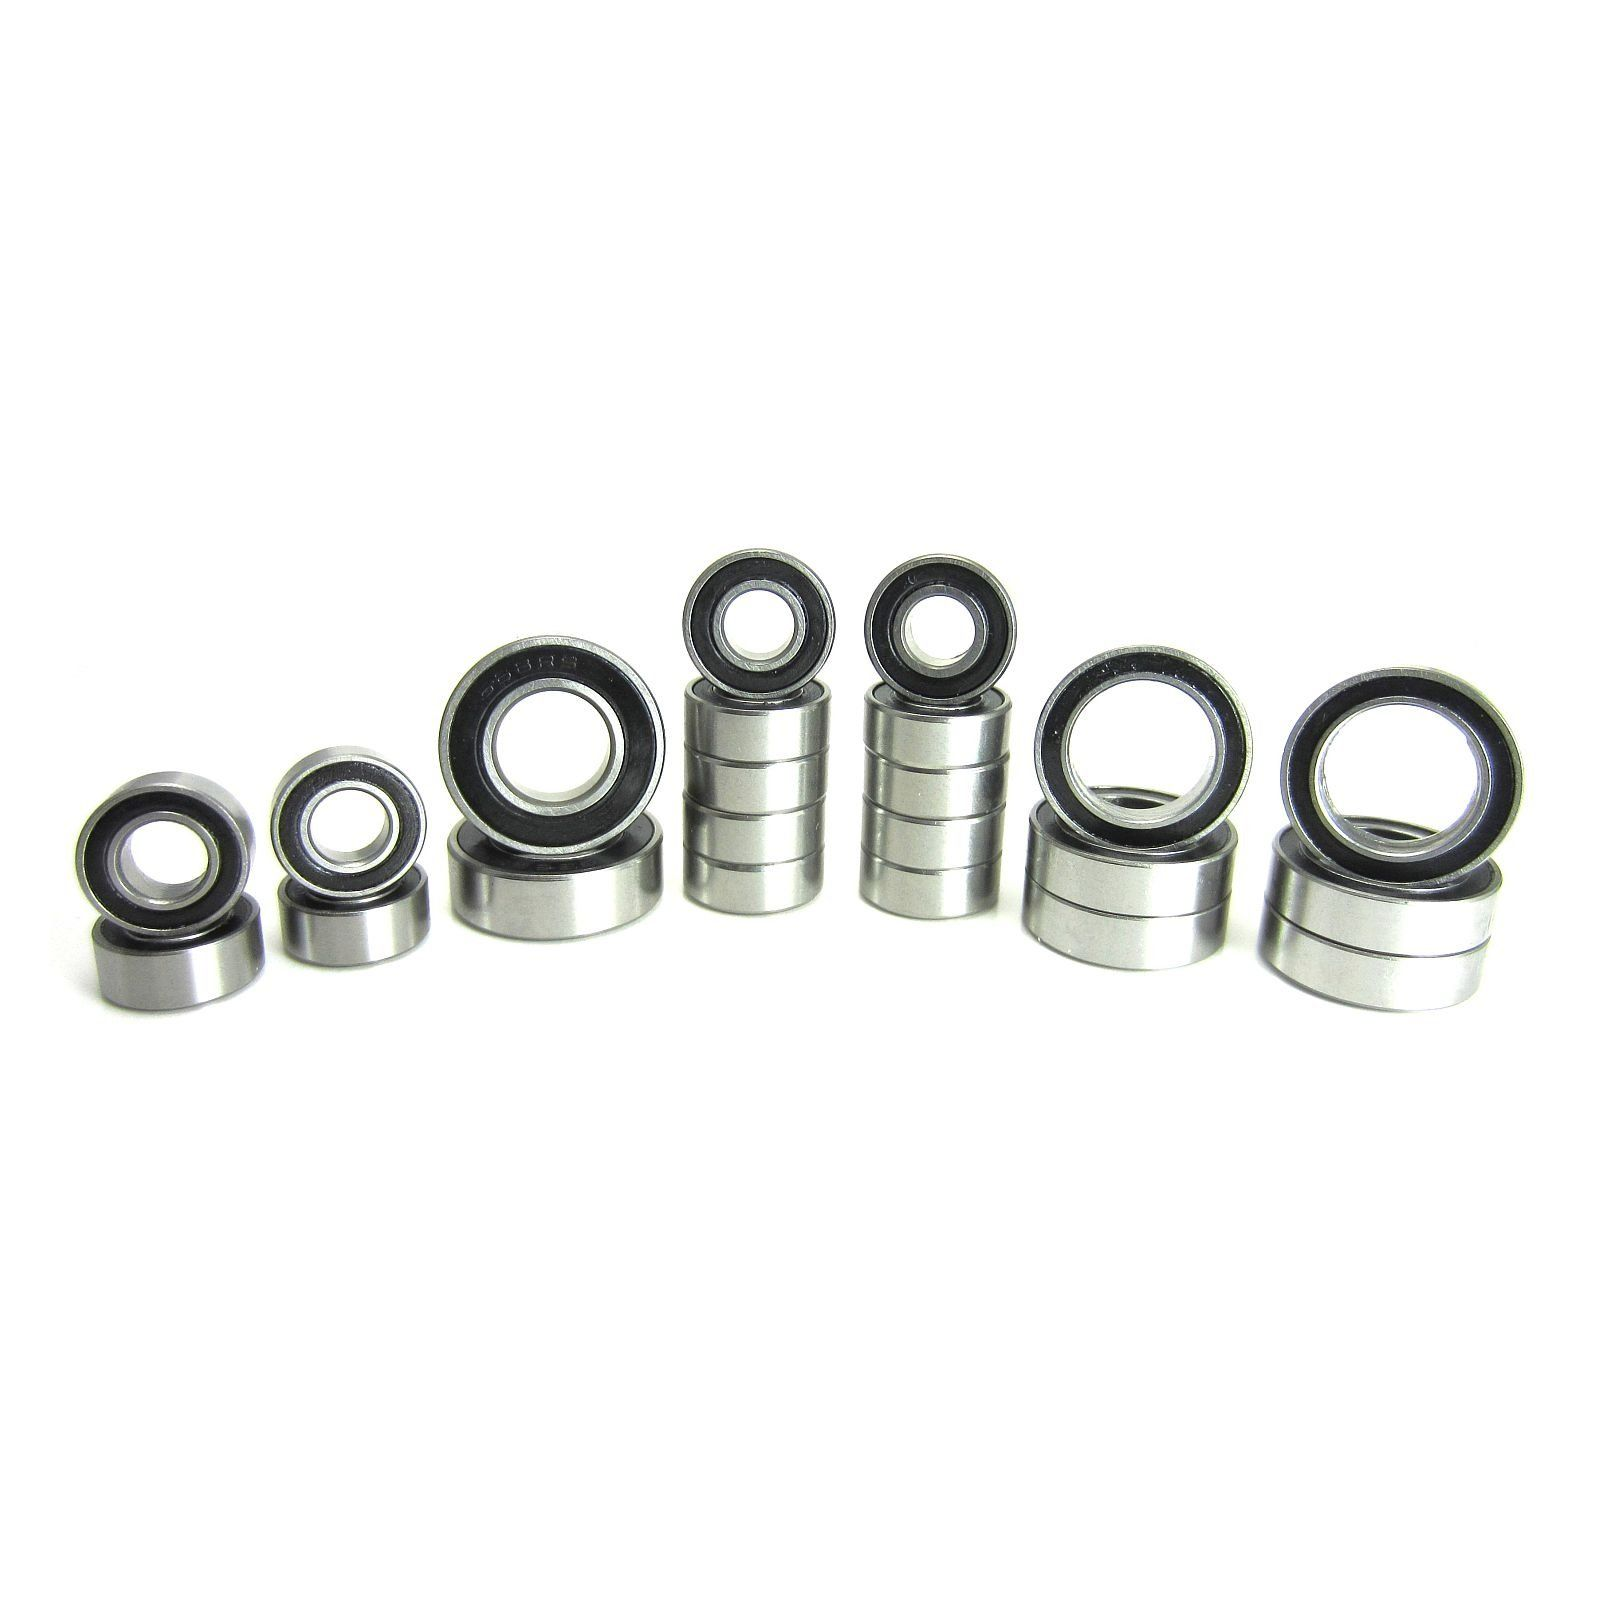 TRB RC Stainless Steel Precision Bearing Kit (22) Rubber Sealed Axial SCX10 - trb-rc-bearings